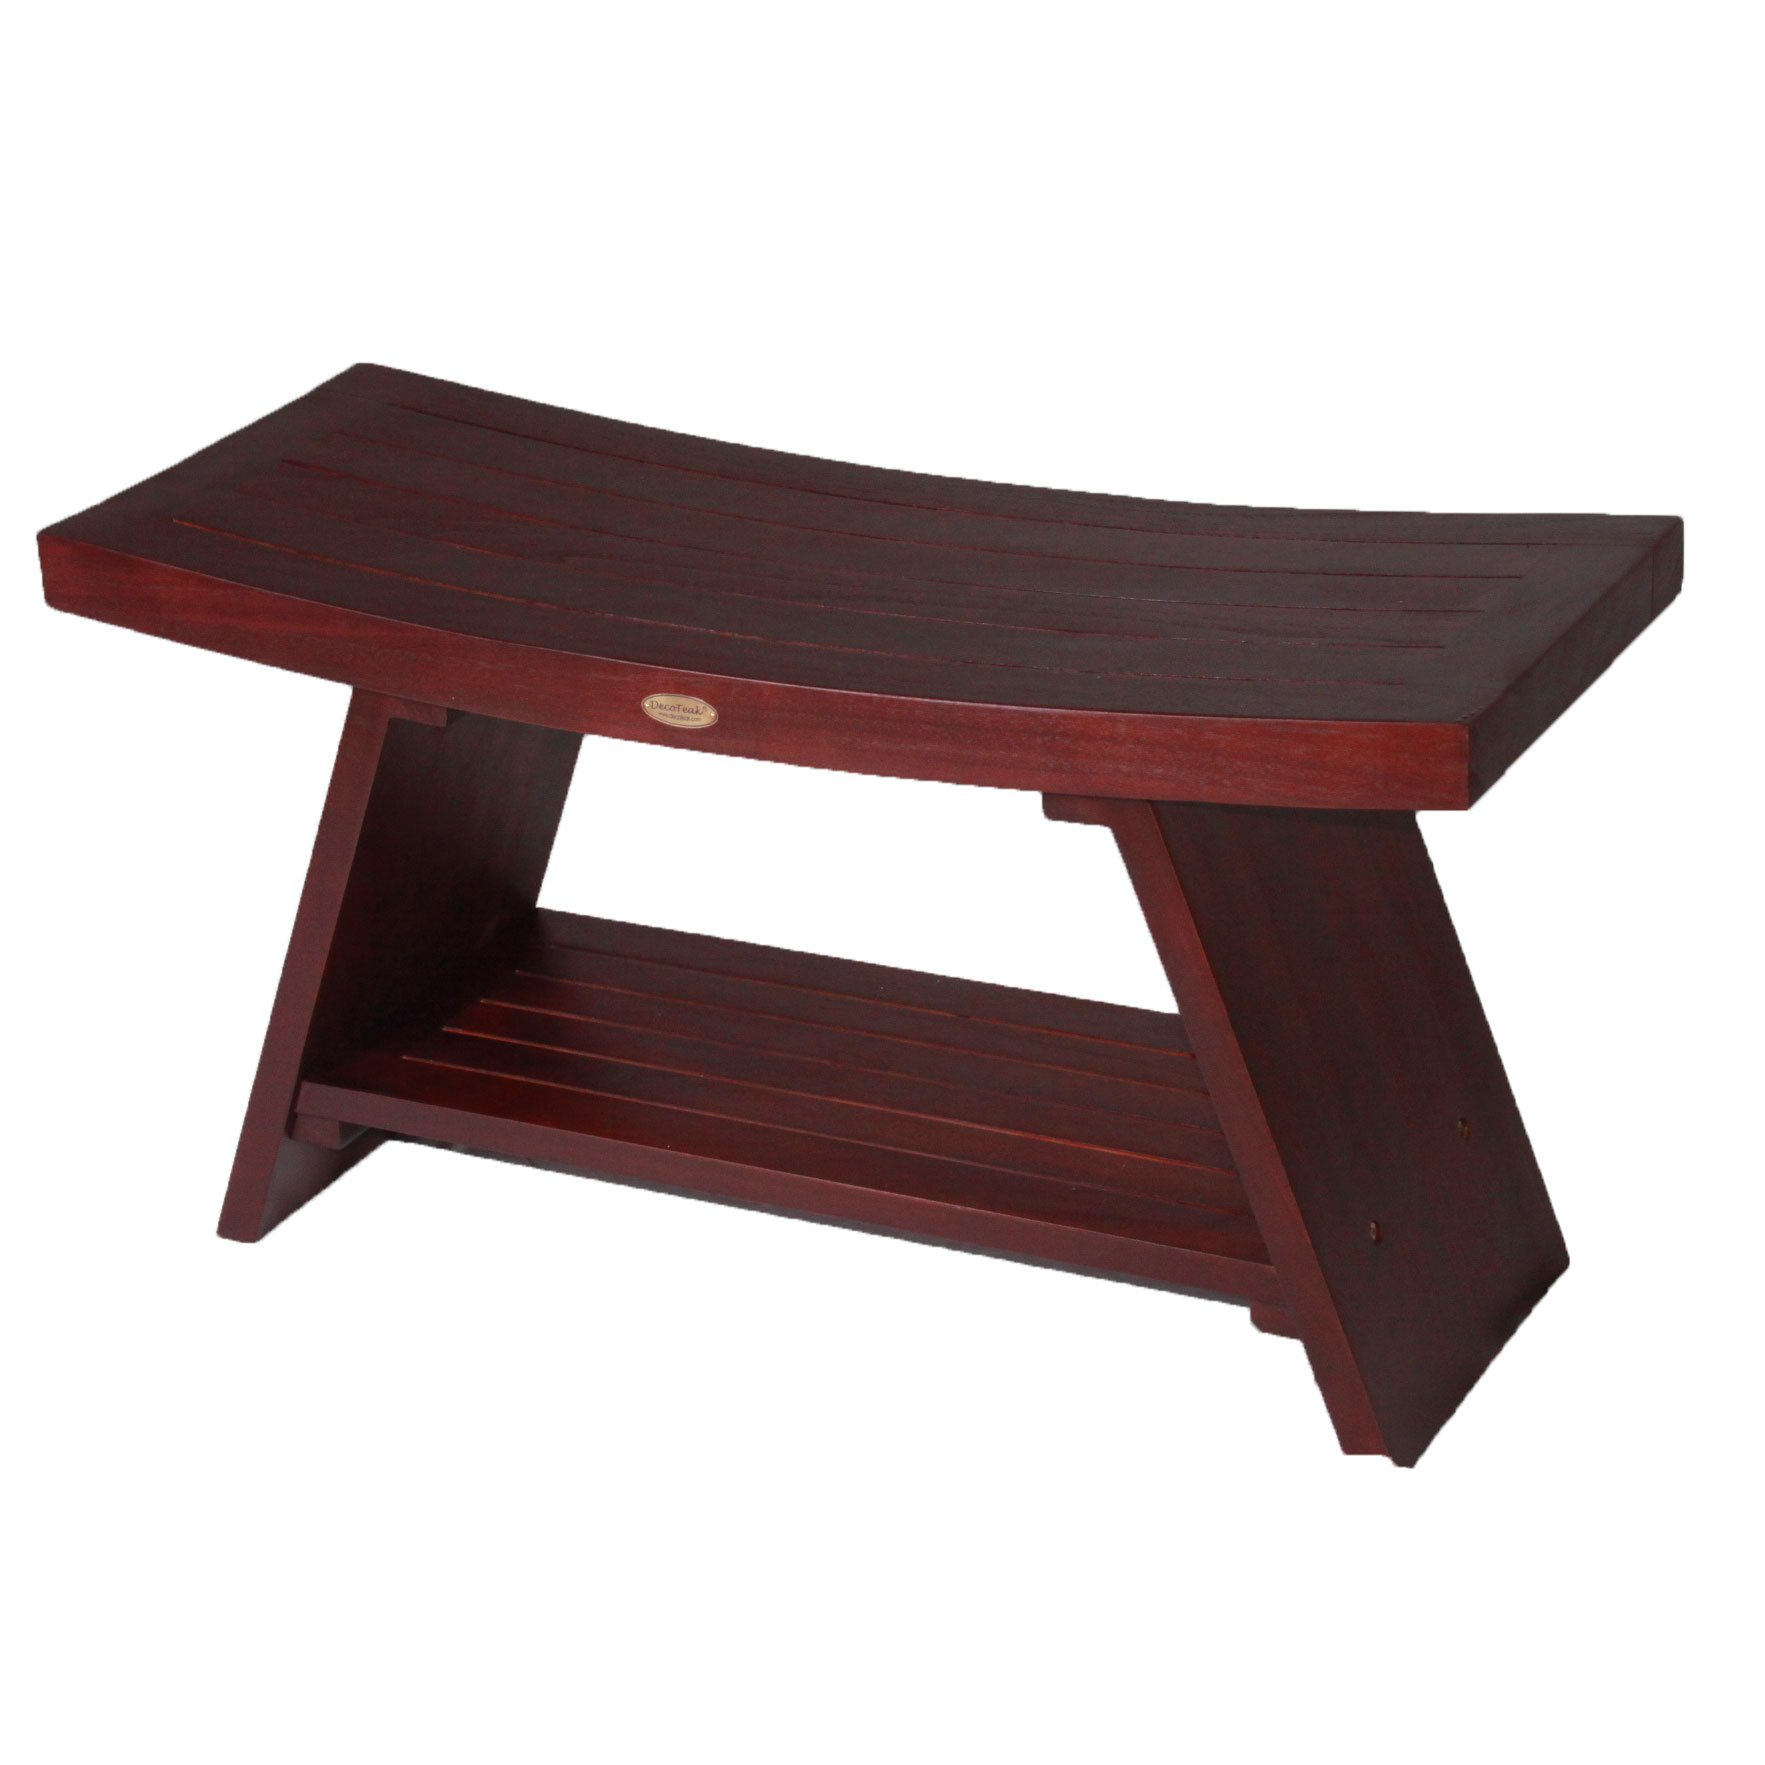 DecoTeak Serenity 35'' Eastern Style Teak Shower Bench With Shelf